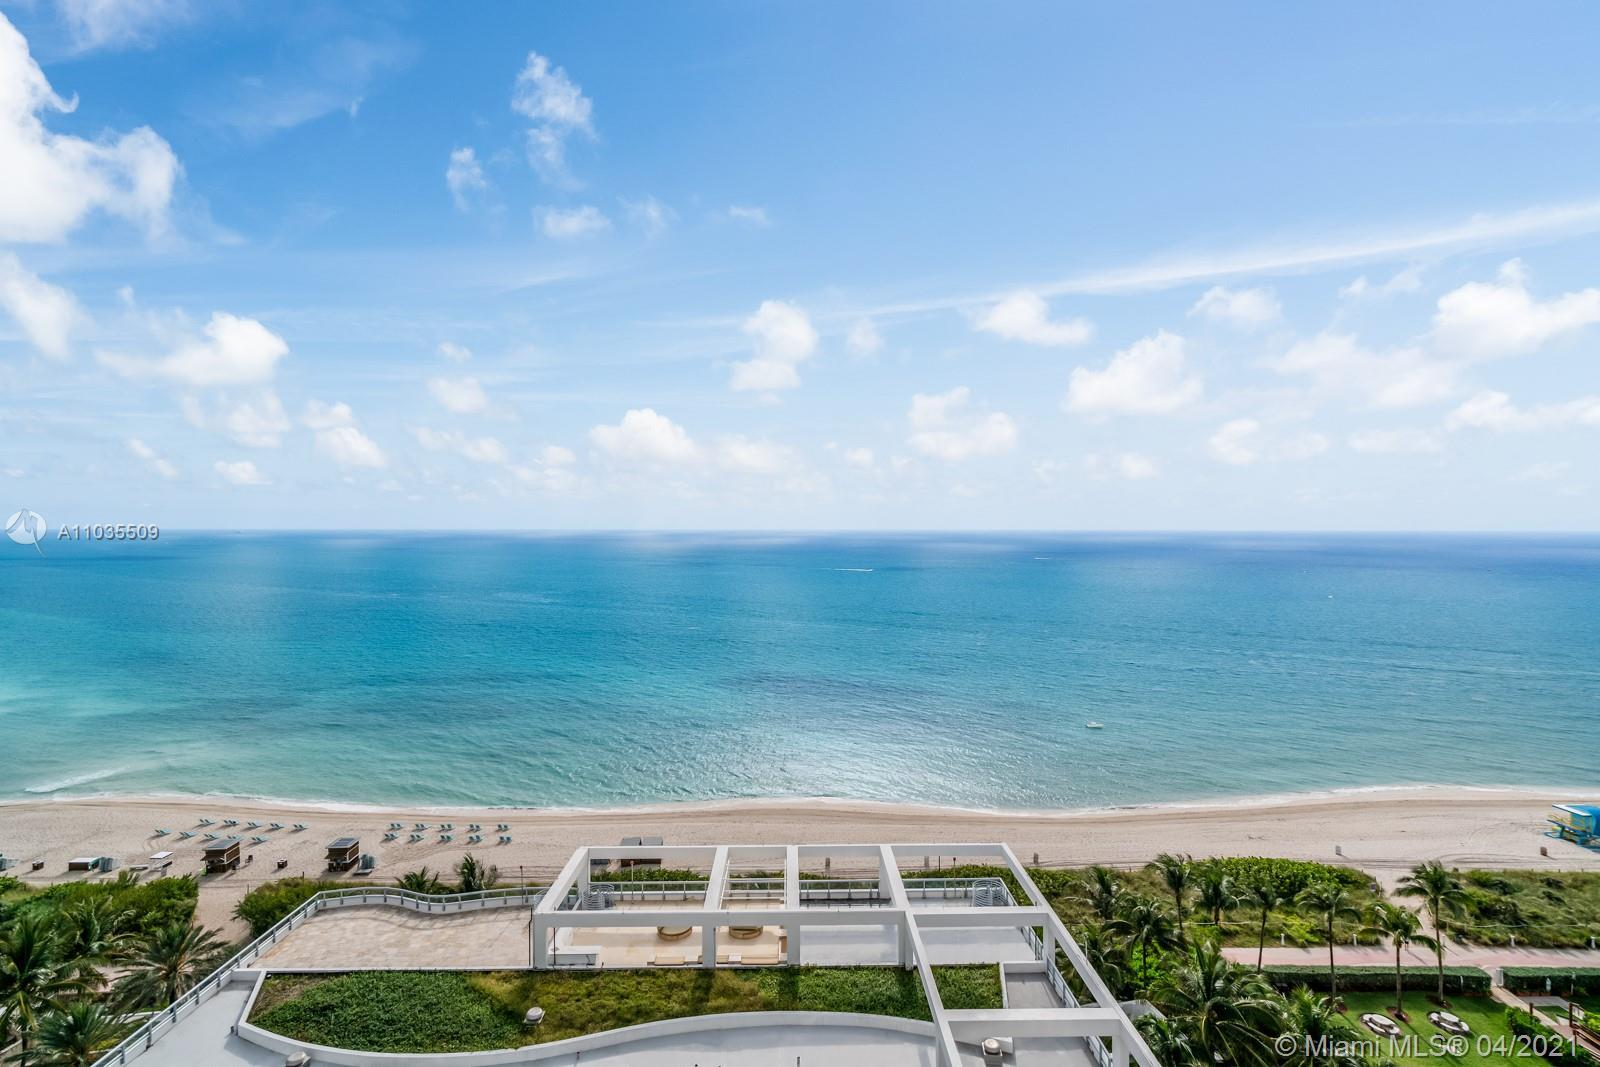 Rare opportunity to own a beautifully renovated, fully furnished smart home w/ expansive ocean views